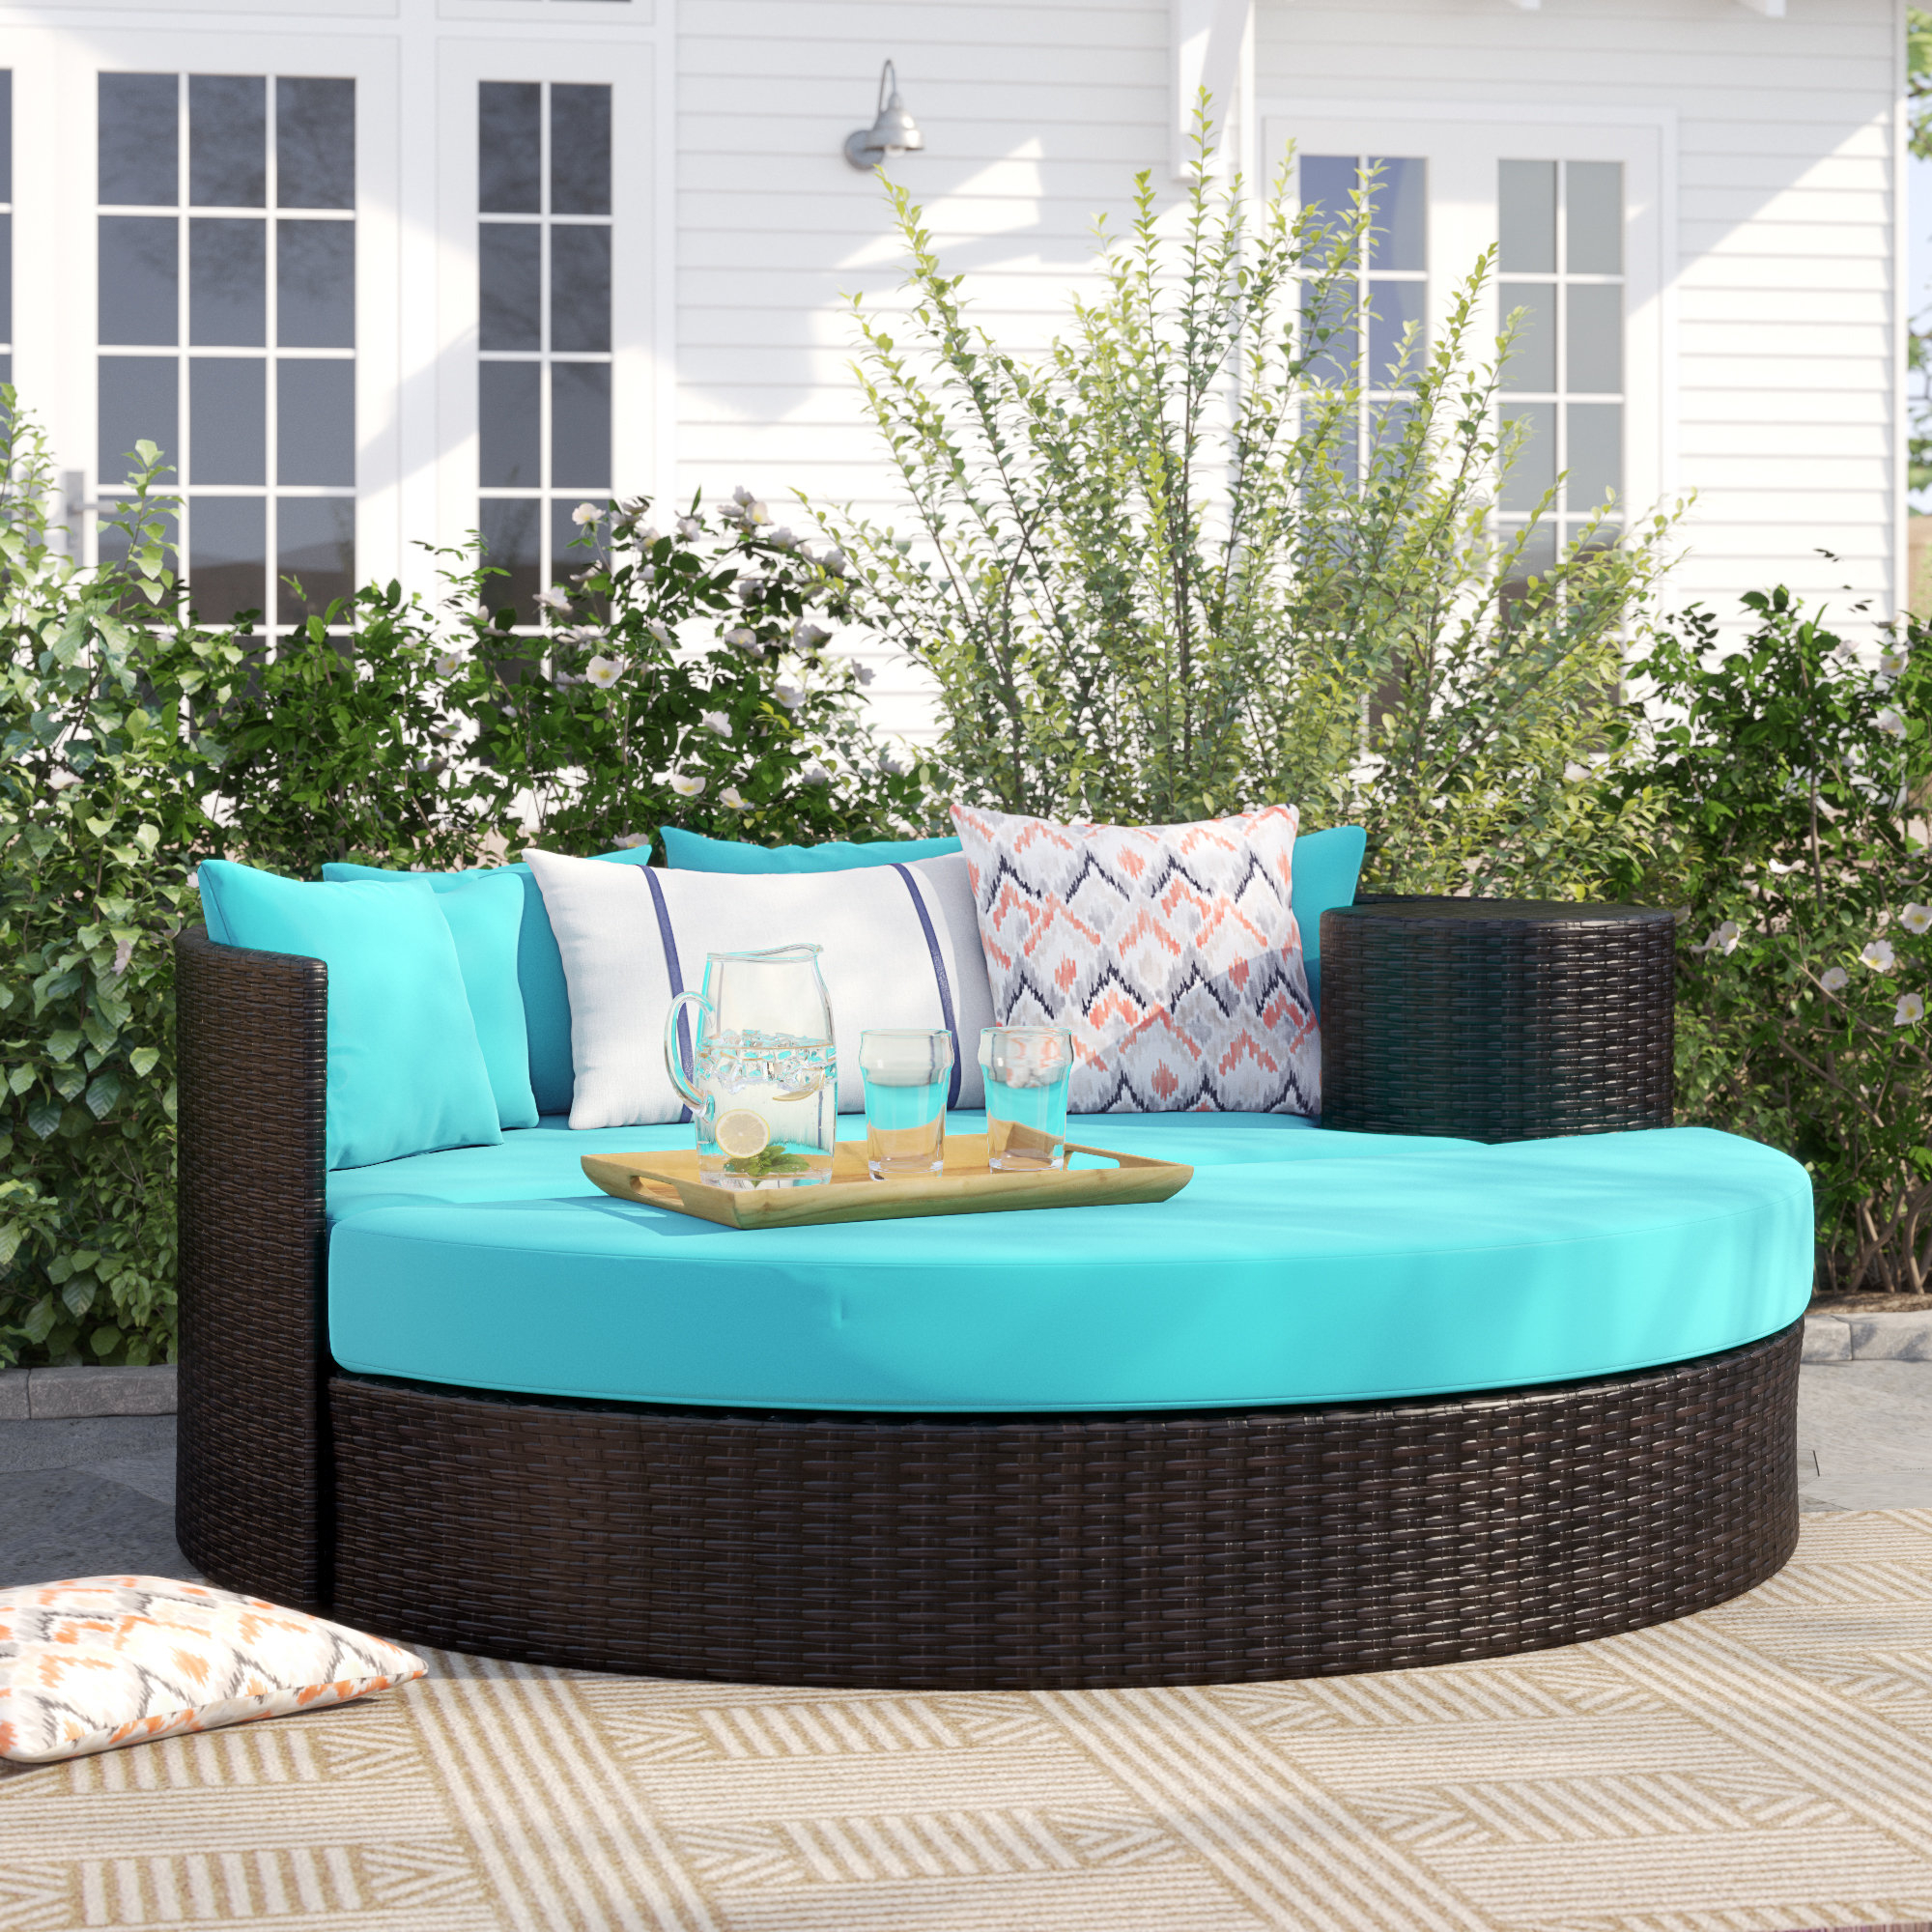 Falmouth Patio Daybeds With Cushions Within Well Known Freeport Patio Daybed With Cushion (View 4 of 20)